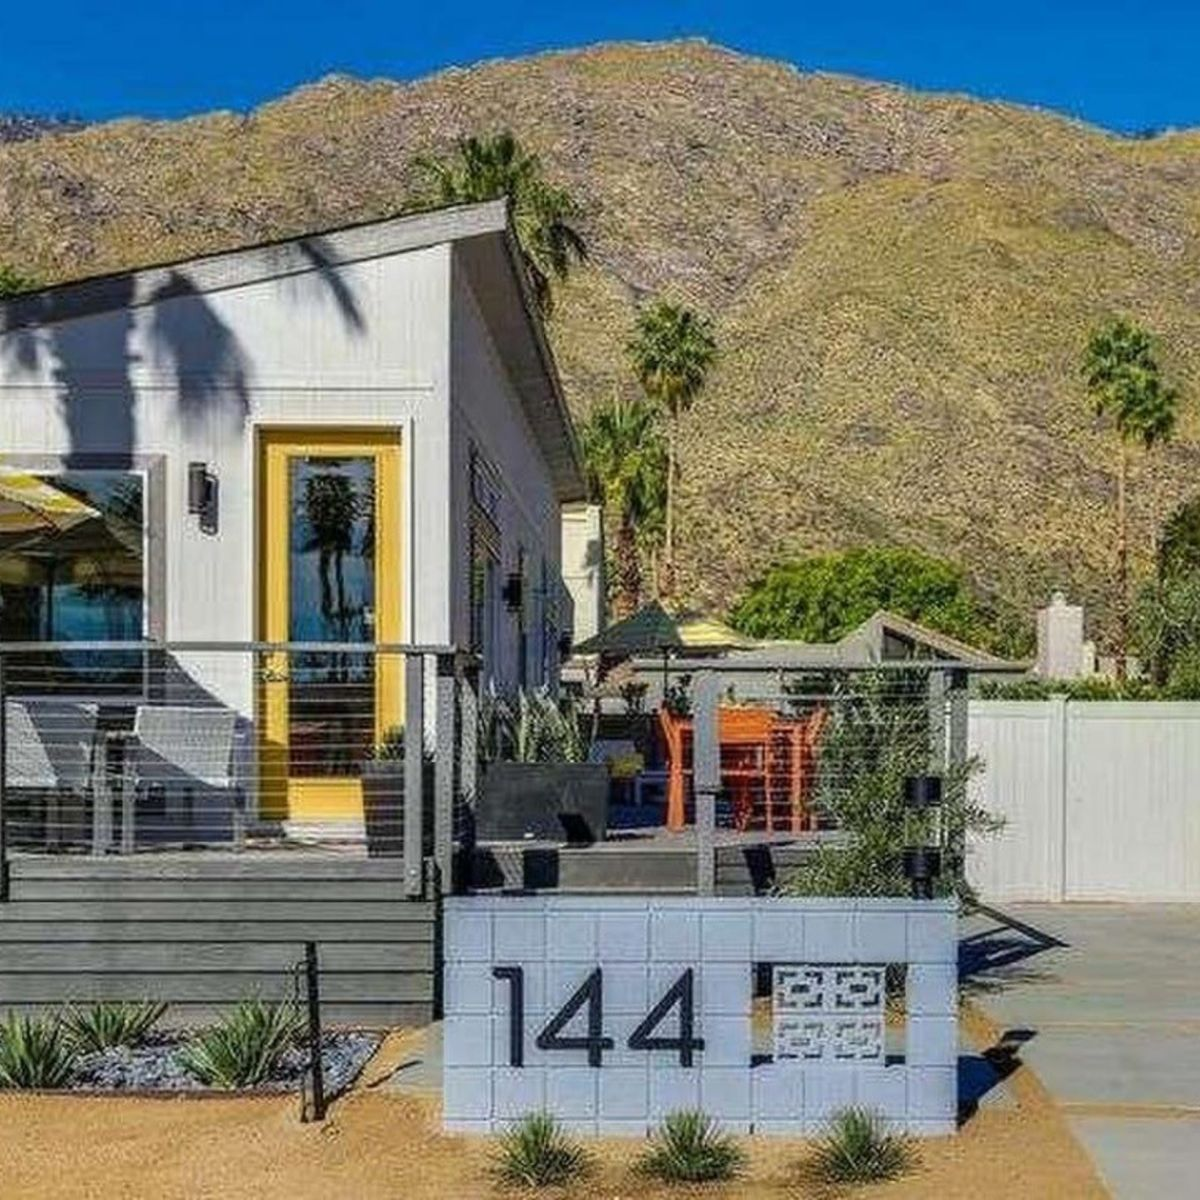 Palm Springs Resort Micro Homes Tiny House For Sale In Palm Springs California Tiny House